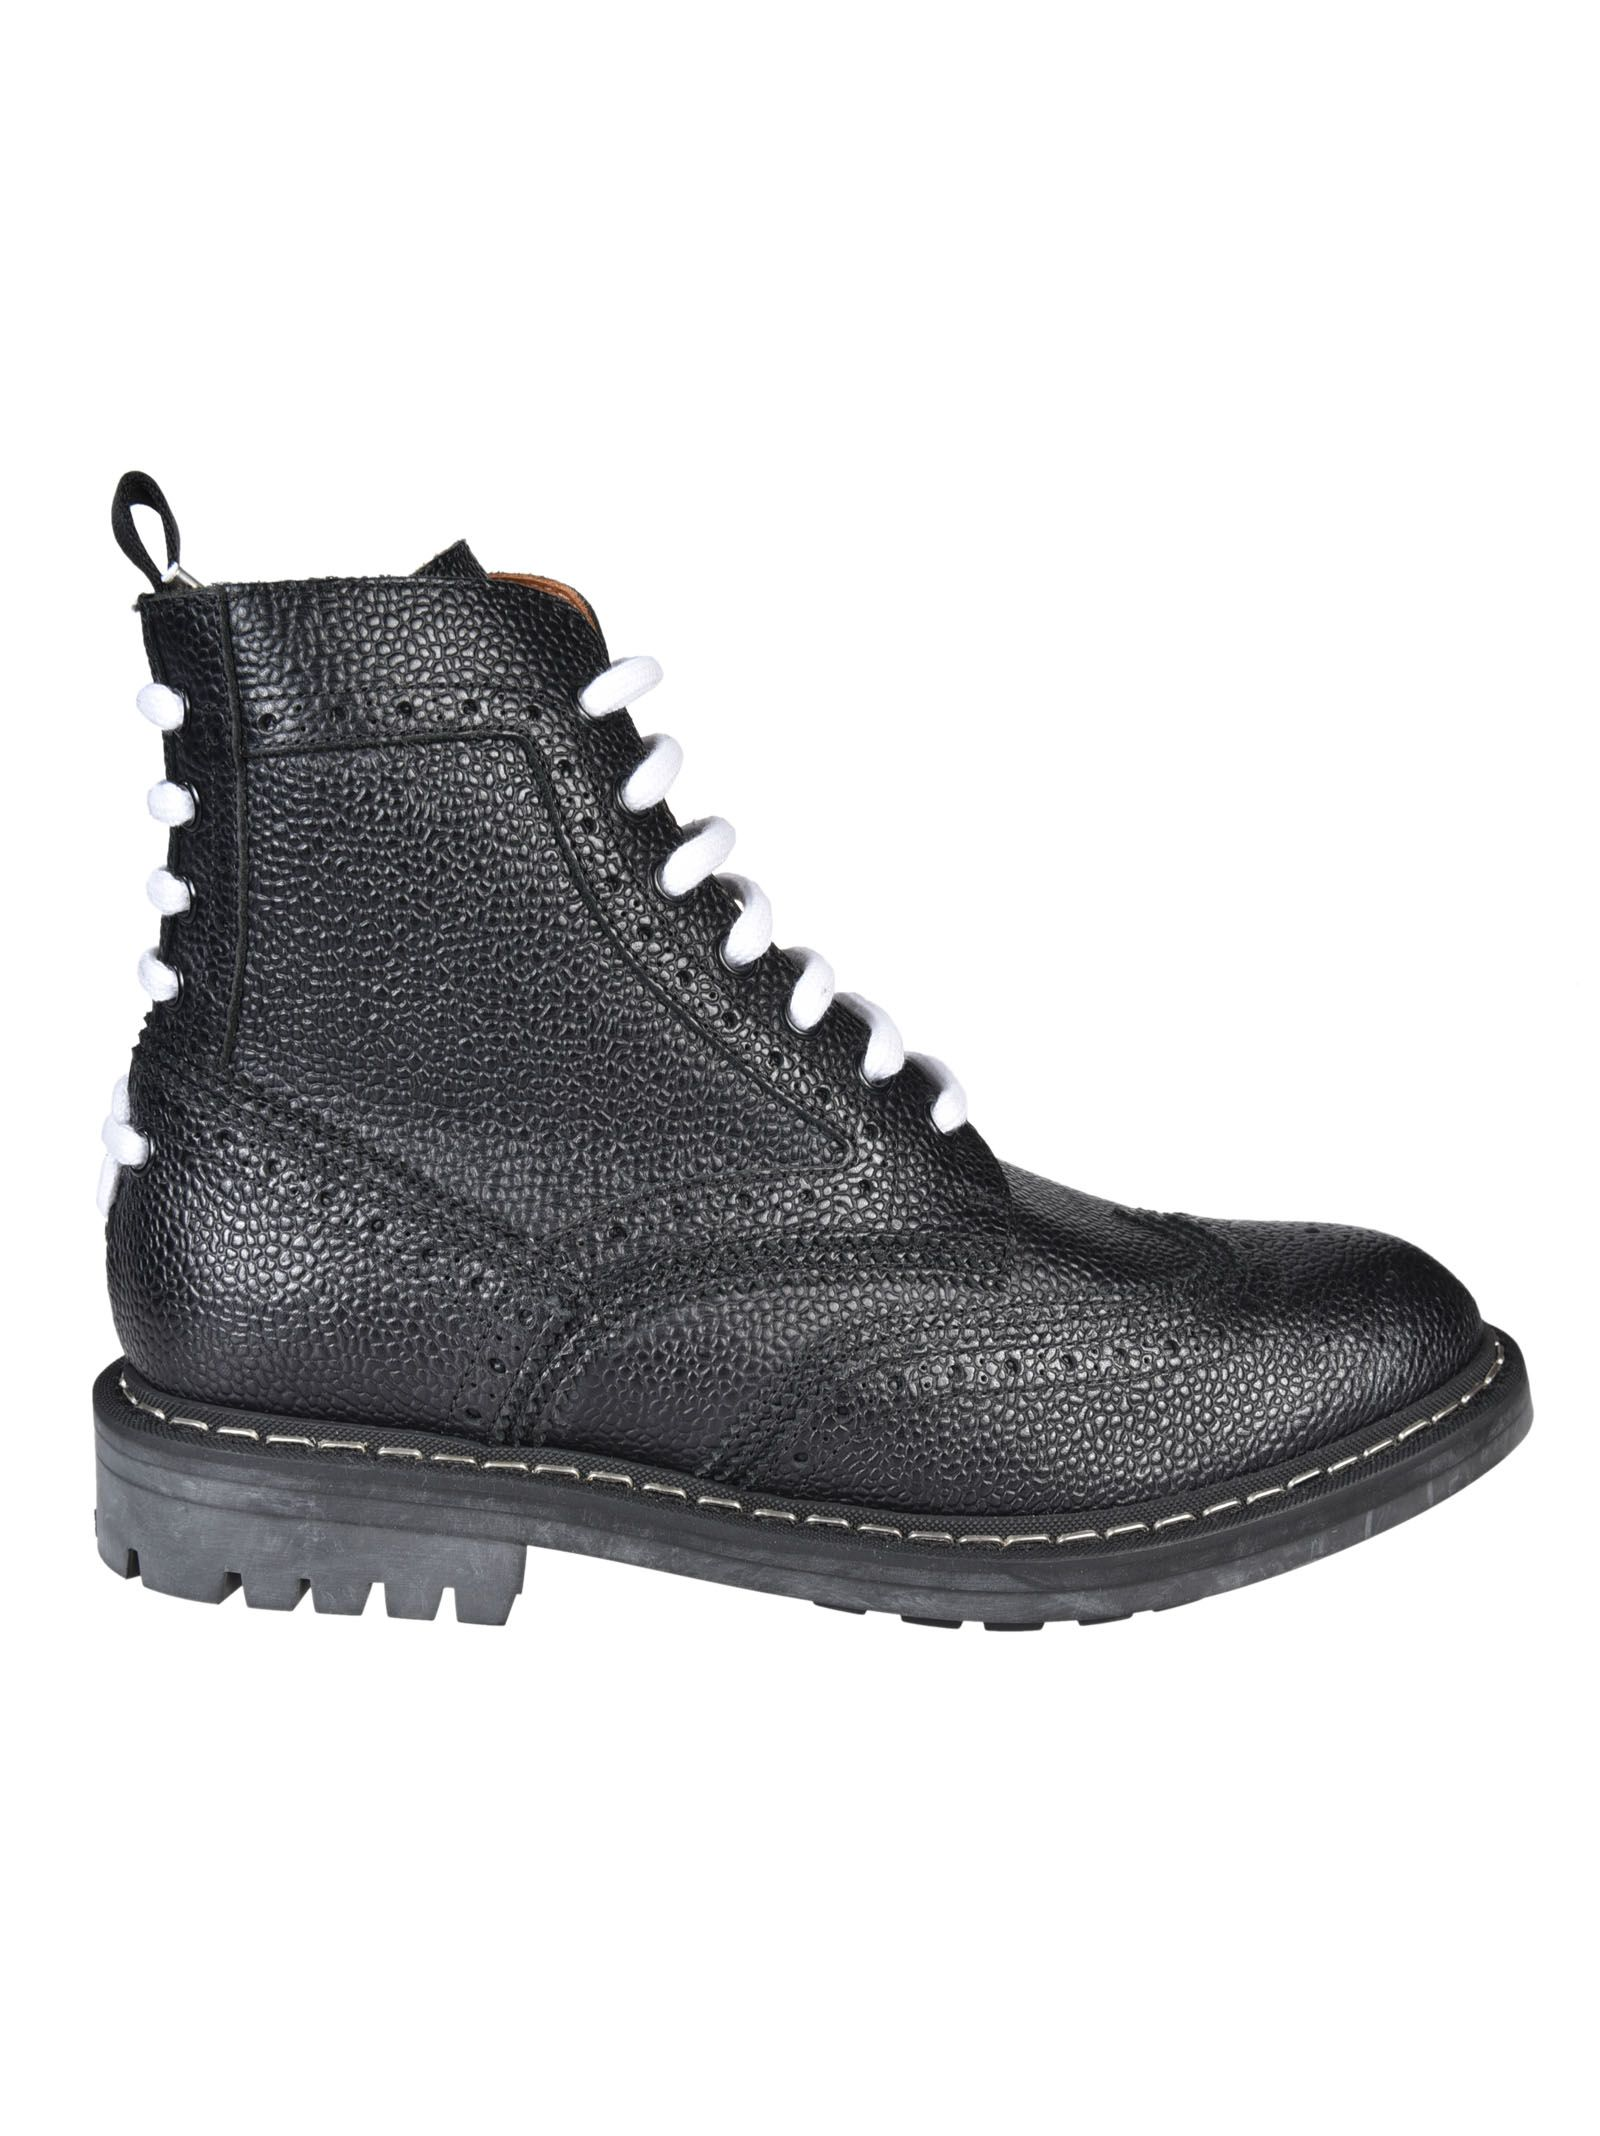 Givenchy Runway Commando Lace-up Boots